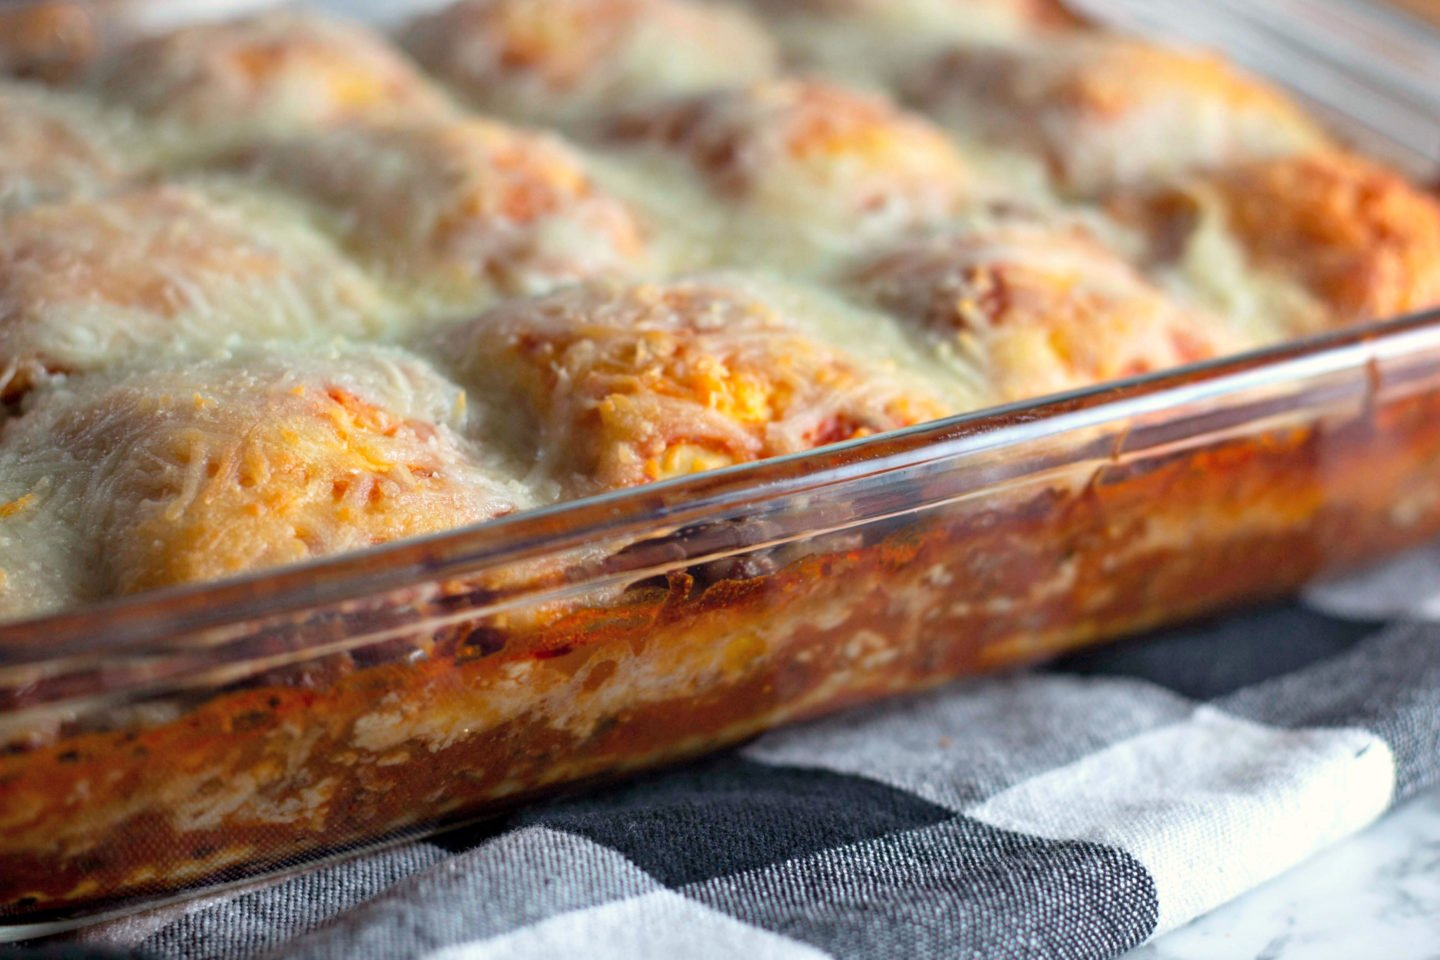 A pan with layers of hot sauce, cheese, and ravioli baked up.